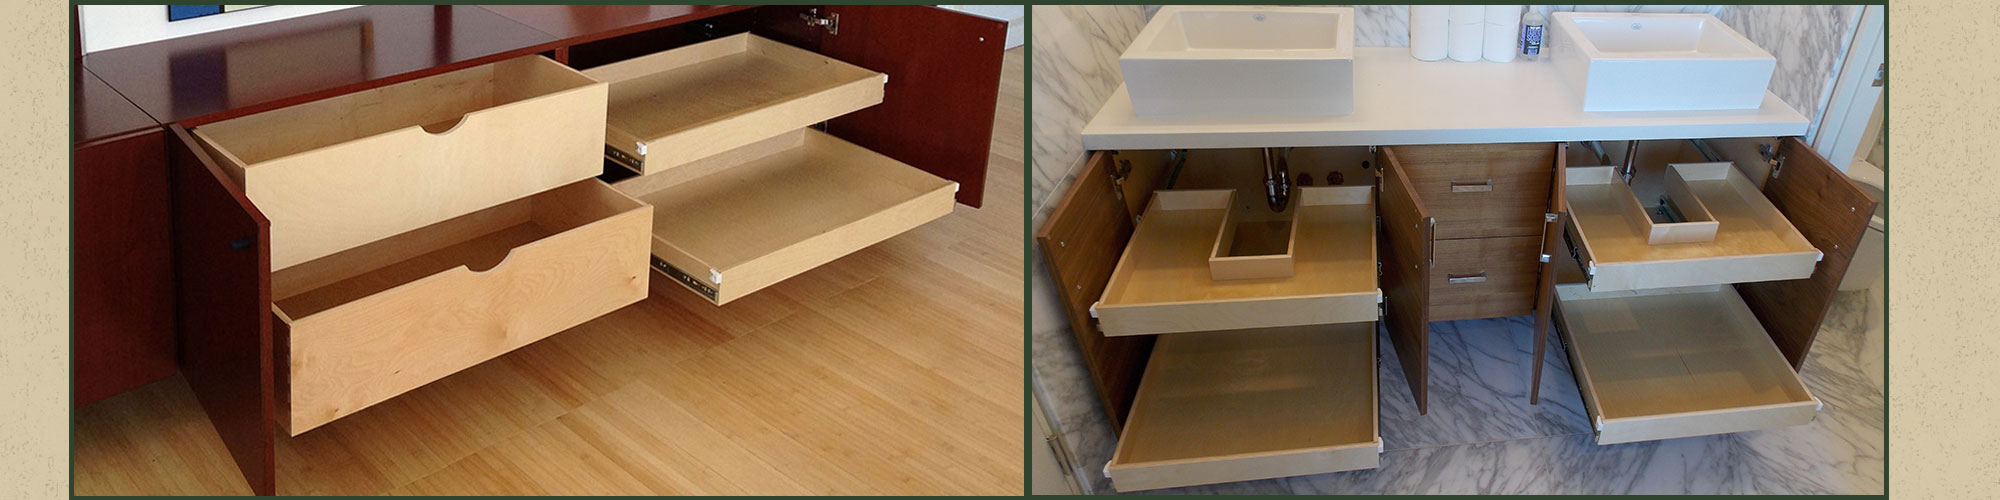 Storage Solutions in San Francisco, CA – Roll Out Shelves